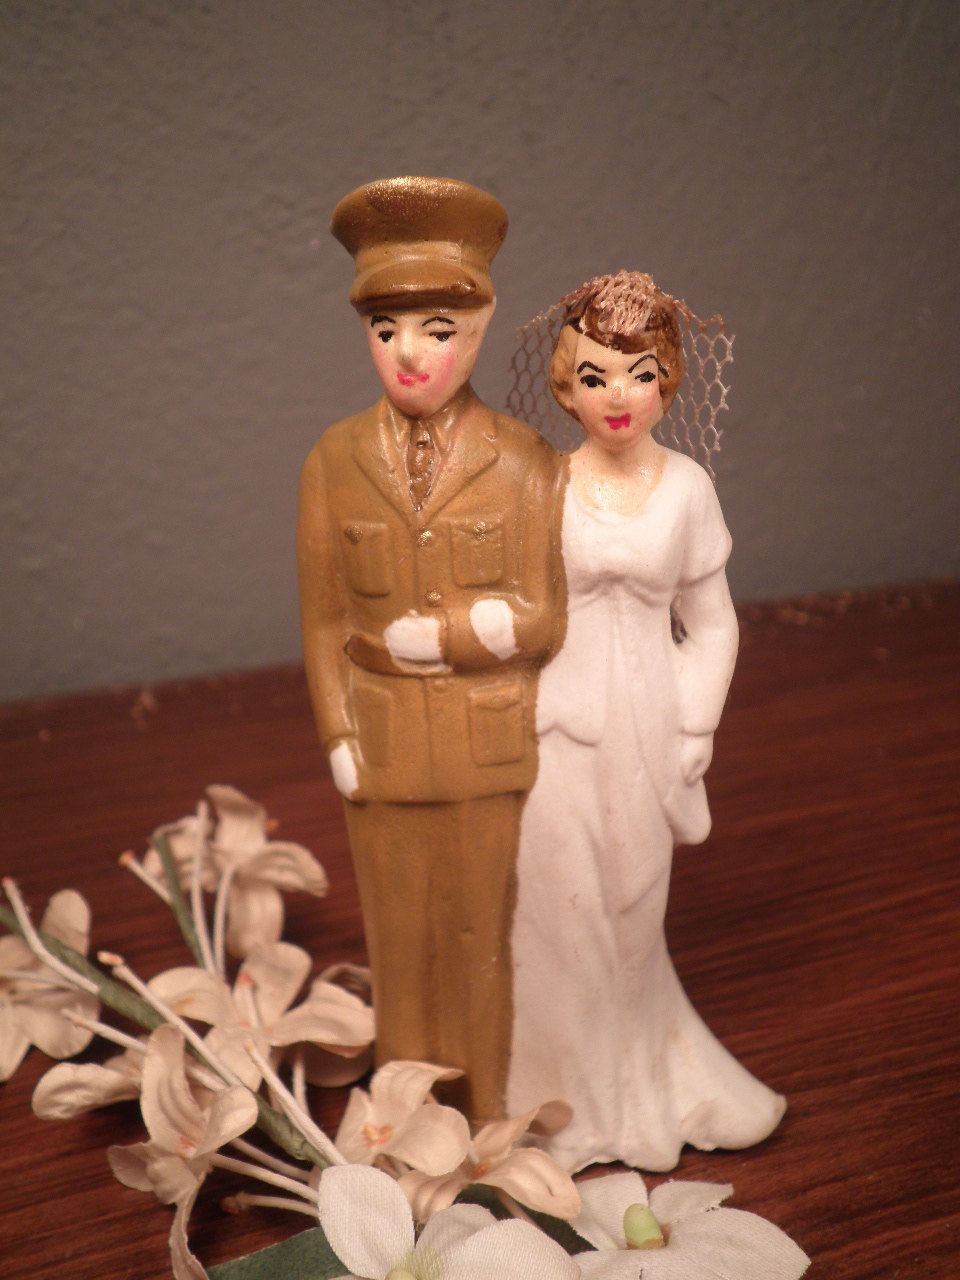 Vintage WWII Military Wedding Cake Topper